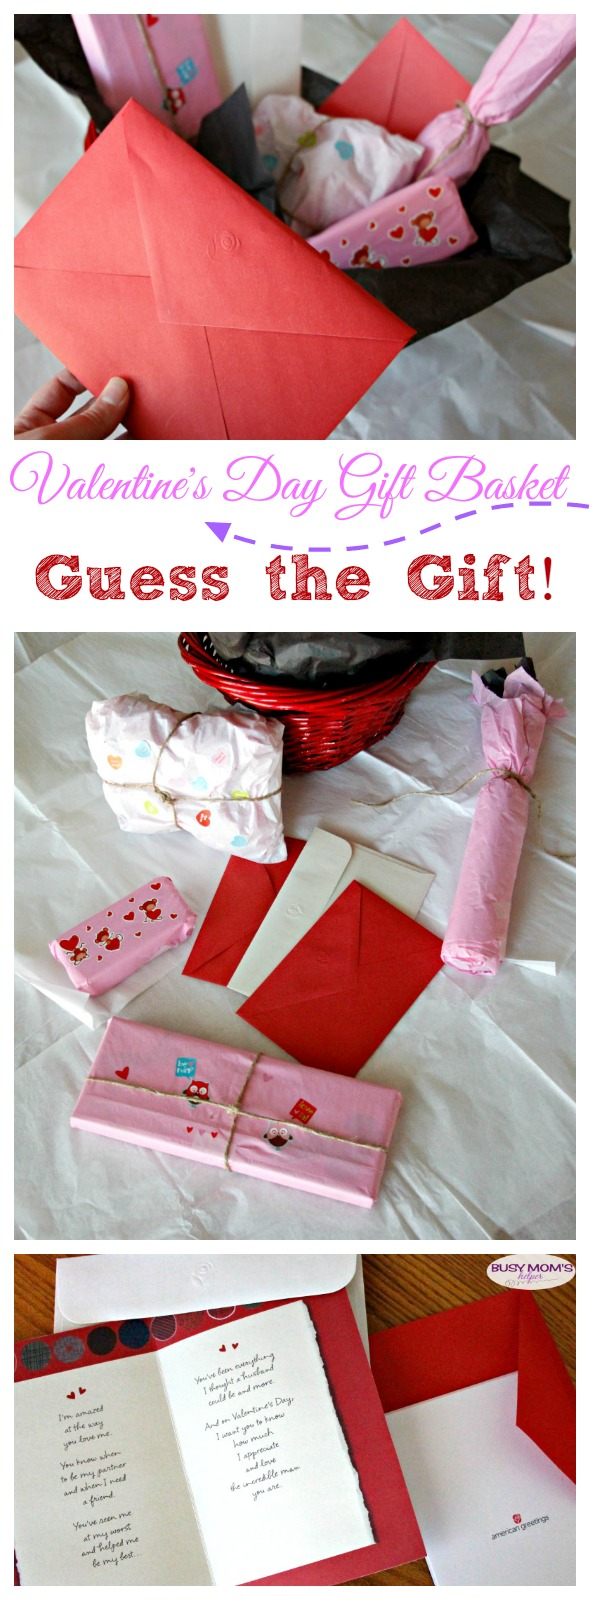 Valentine's Day Gift Basket: Guess the Gift! A playful and creative way to give to your sweetie this holiday #MyTuesdayValentine #ad